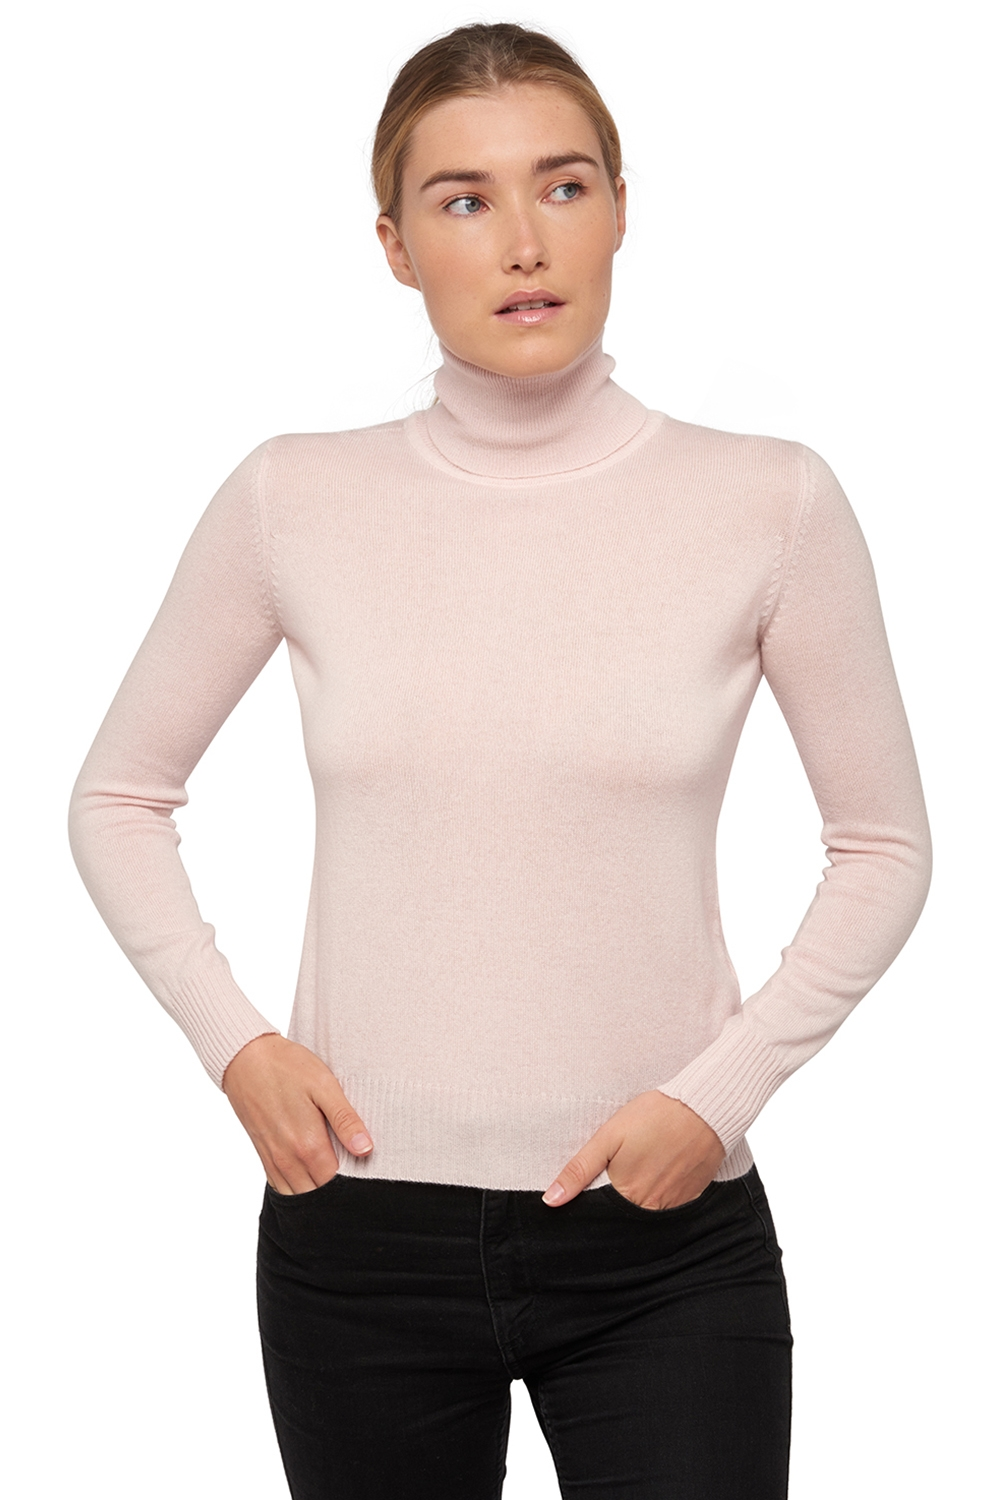 Cachemire pull femme col roule lili rose pale 4xl